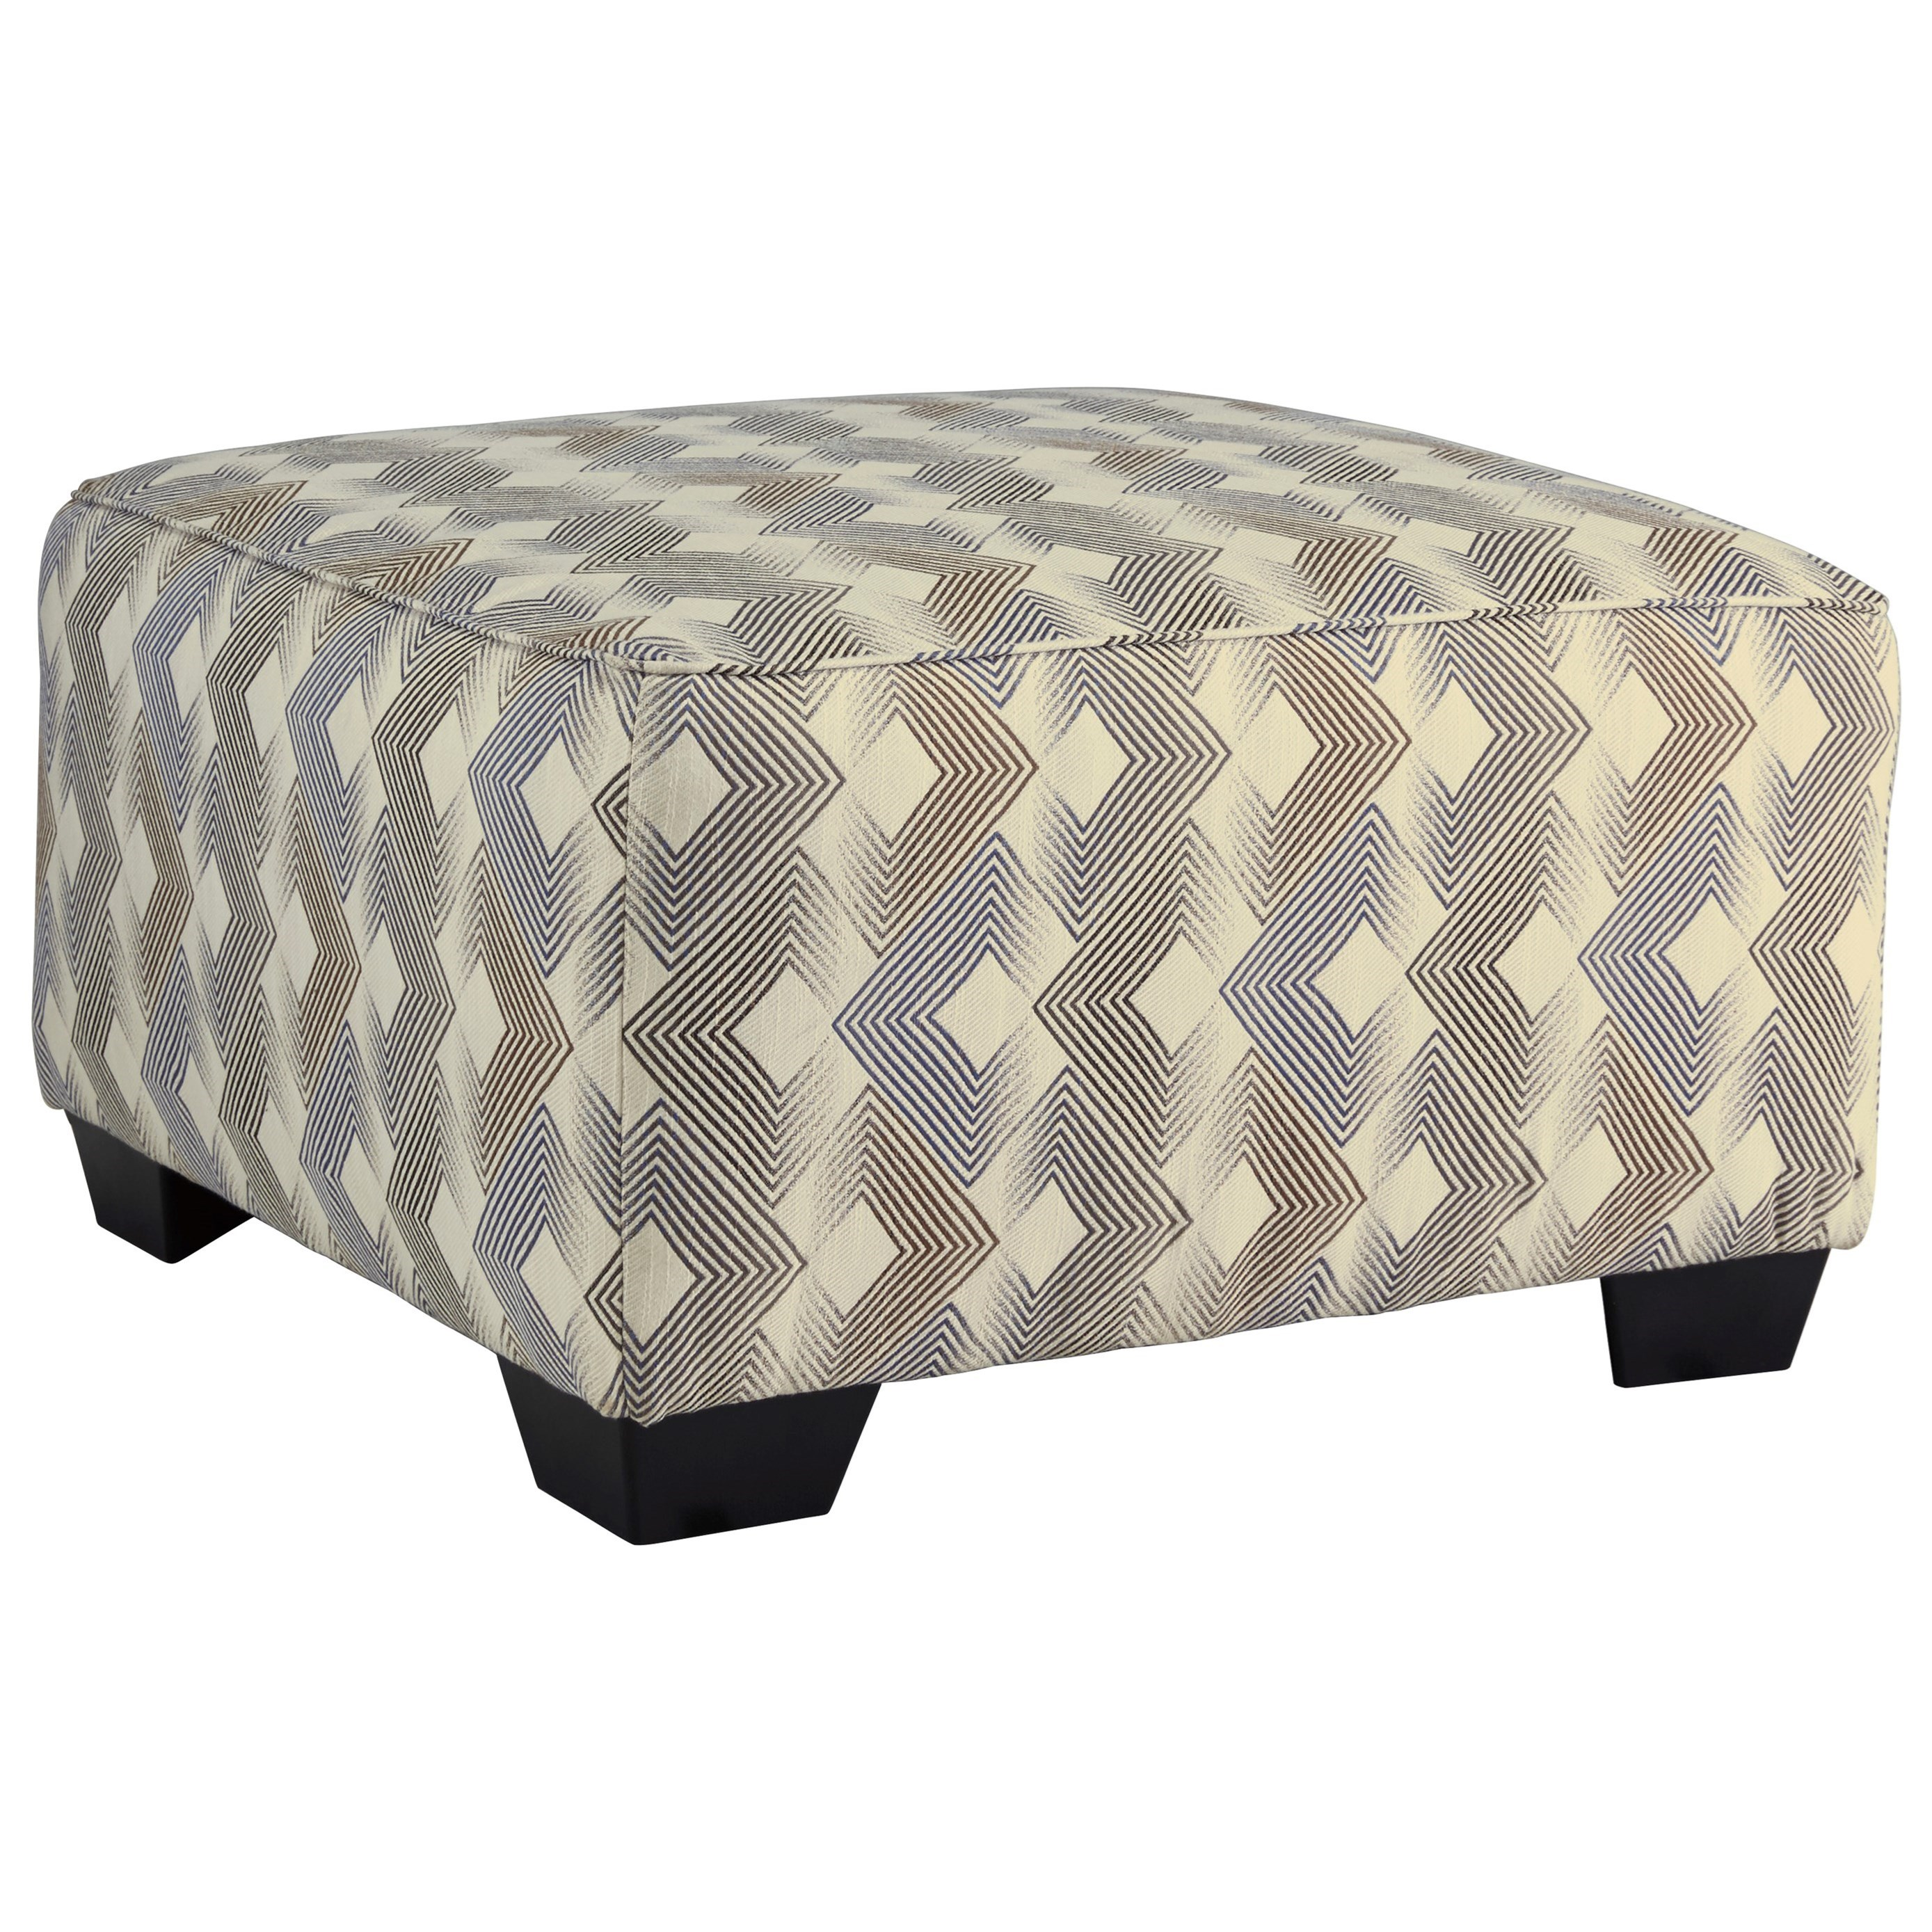 Eltmann Oversized Accent Ottoman by Signature Design by Ashley at Northeast Factory Direct